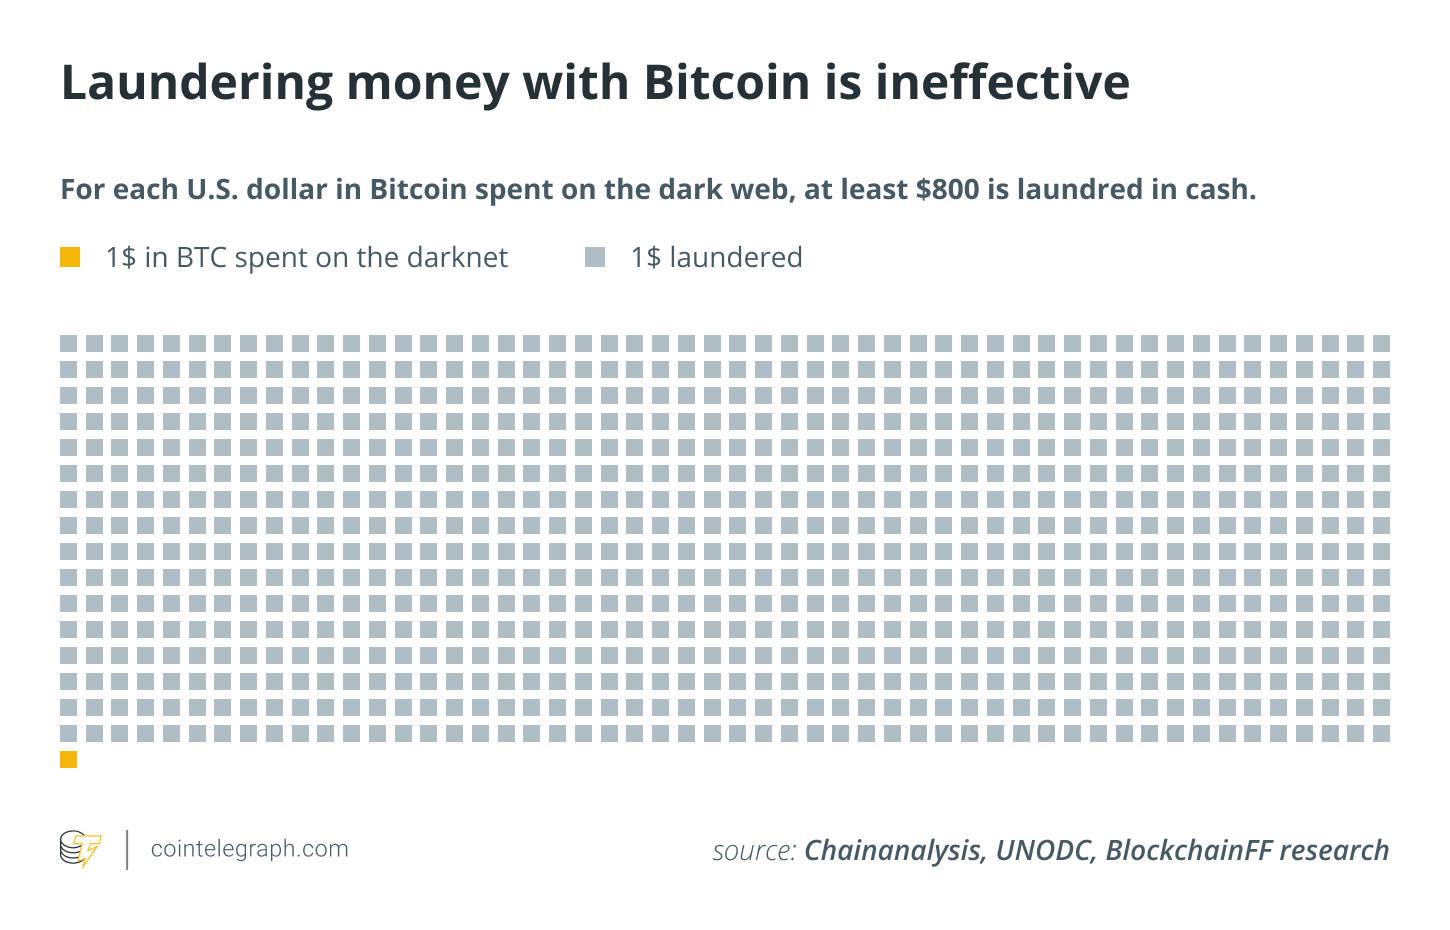 Laundering money with Bitcoin is ineffective